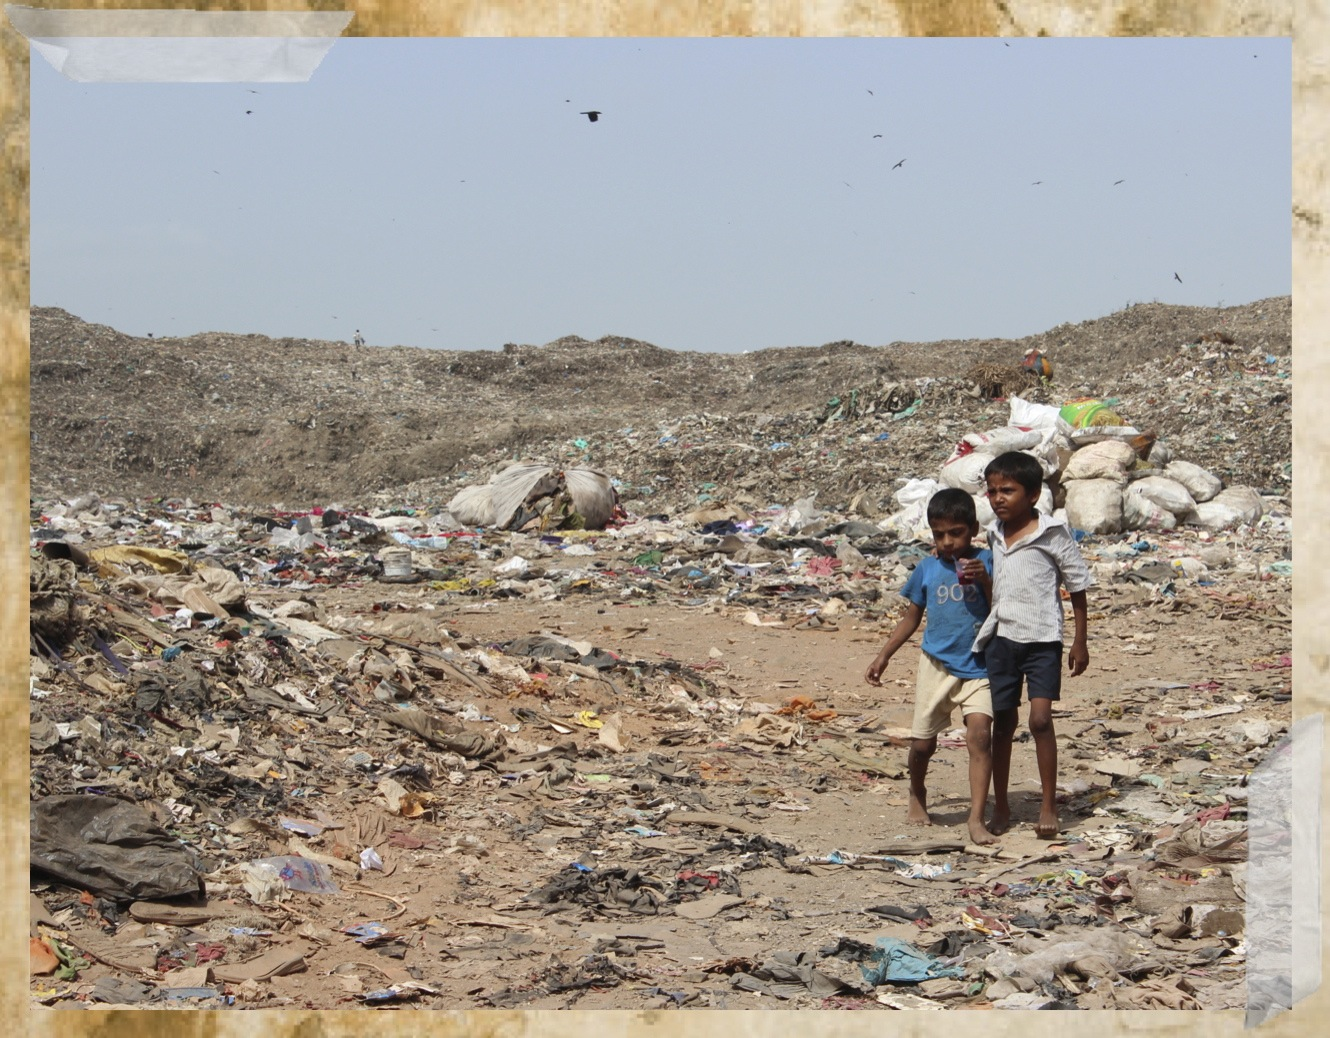 the children of ravi nagar slum